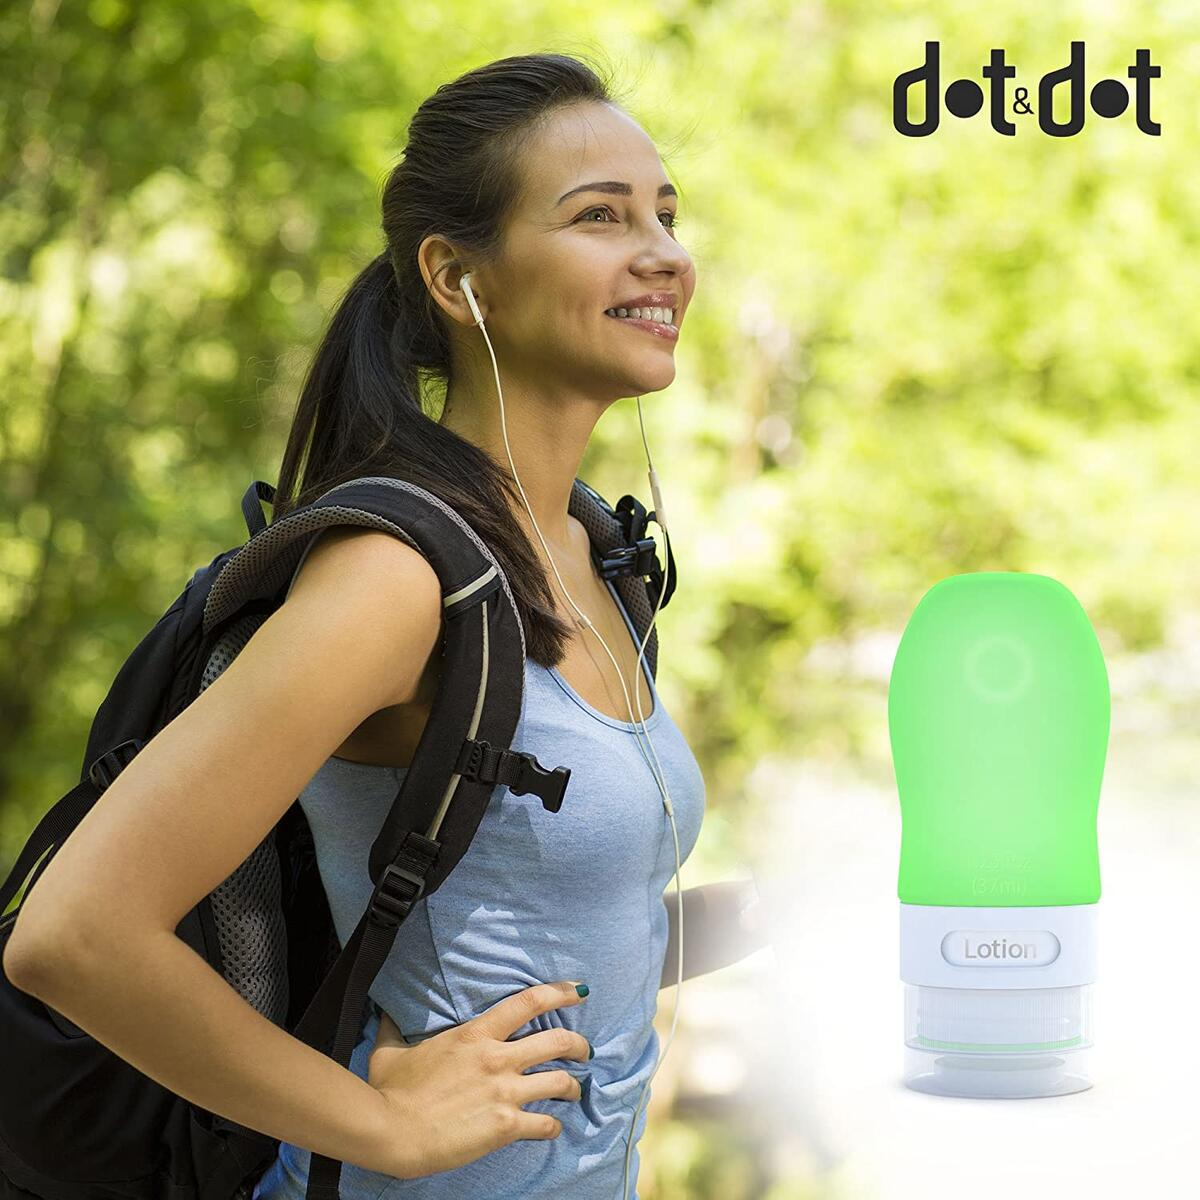 Dot&Dot Travel Bottles - 4 Piece Set of 1.25 oz Leak Proof Travel Containers for Travel Size Toiletries (Green, Pink, Purple, Orange)